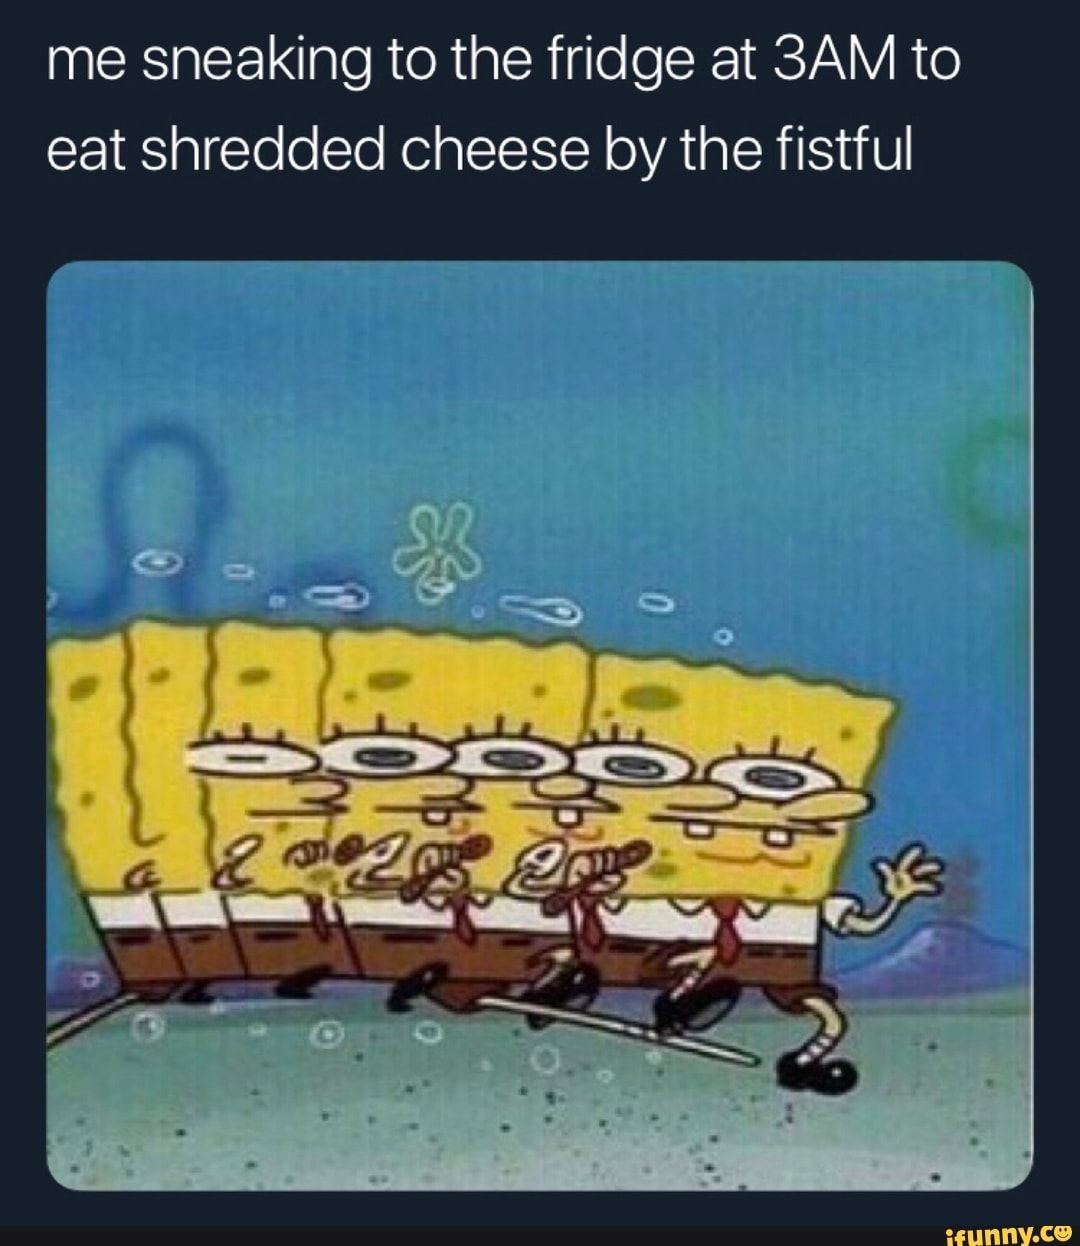 Me Sneaking To The Fridge At Sam To Eat Shredded Cheese By The Fistful Ifunny Spongebob Funny Funny Memes Spongebob Memes